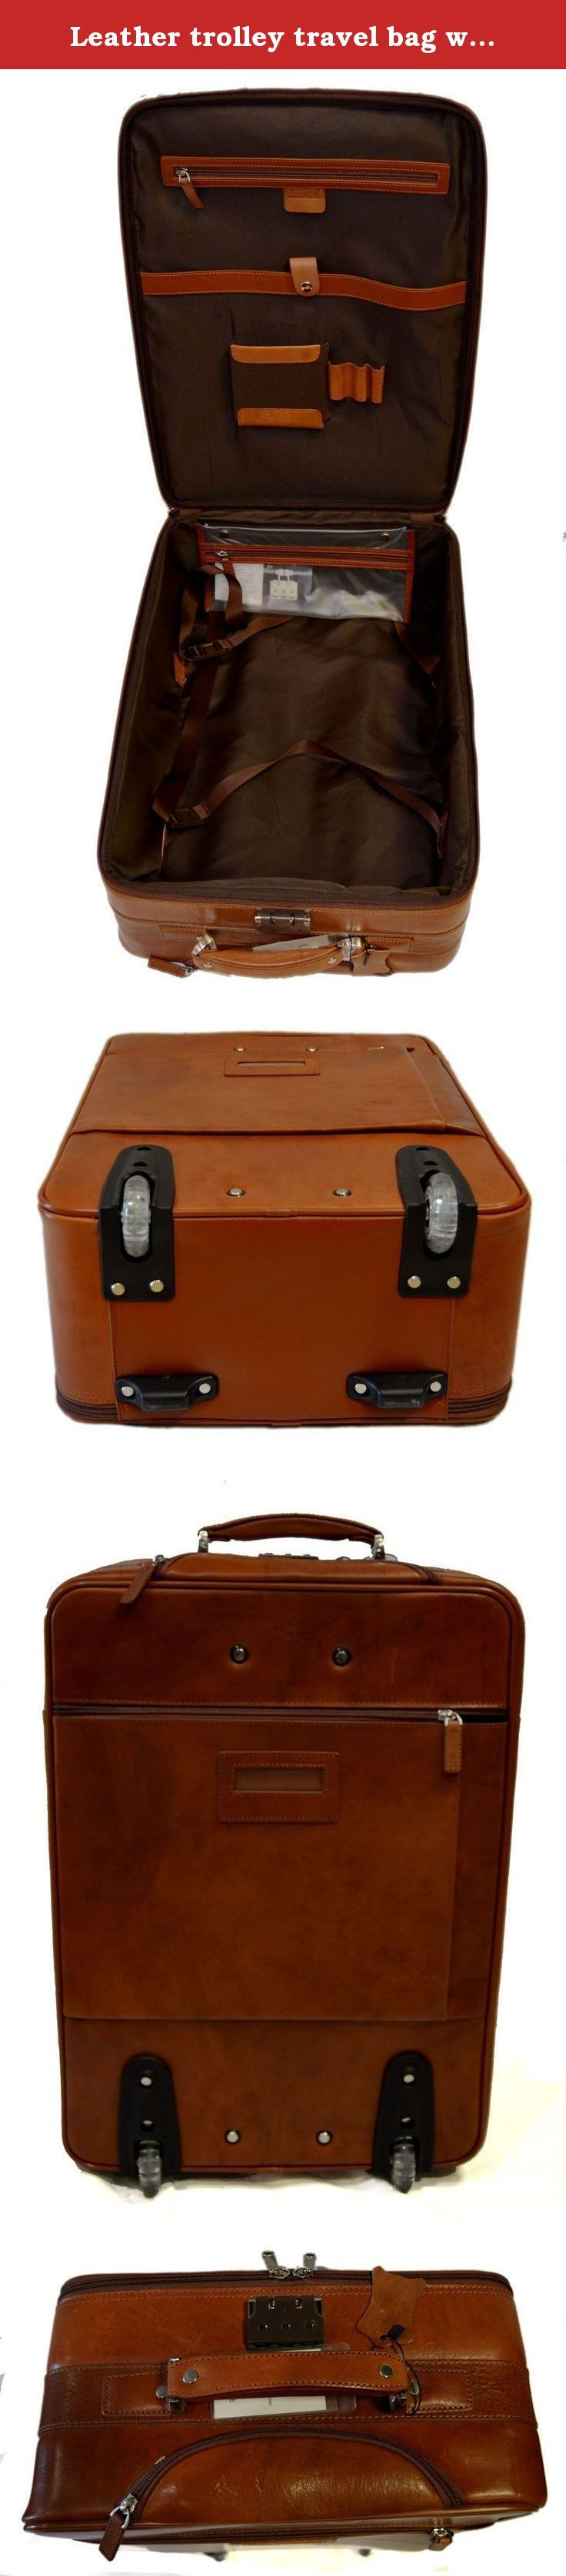 Leather trolley travel bag weekender overnight leather bag with wheels brown leather cabin luggage airplane carryon airplane bag made Italy. Our handbags are manufactured 100% in Italy, handcrafted with the highest quality materials, to create a beautiful and durable product. Genuine Italian leather and fine detailing, make this an essential product to have, as good or better than any luxury item you will find in other stores. Our motto is: Made in Florence, Italy, shipped from Florence...